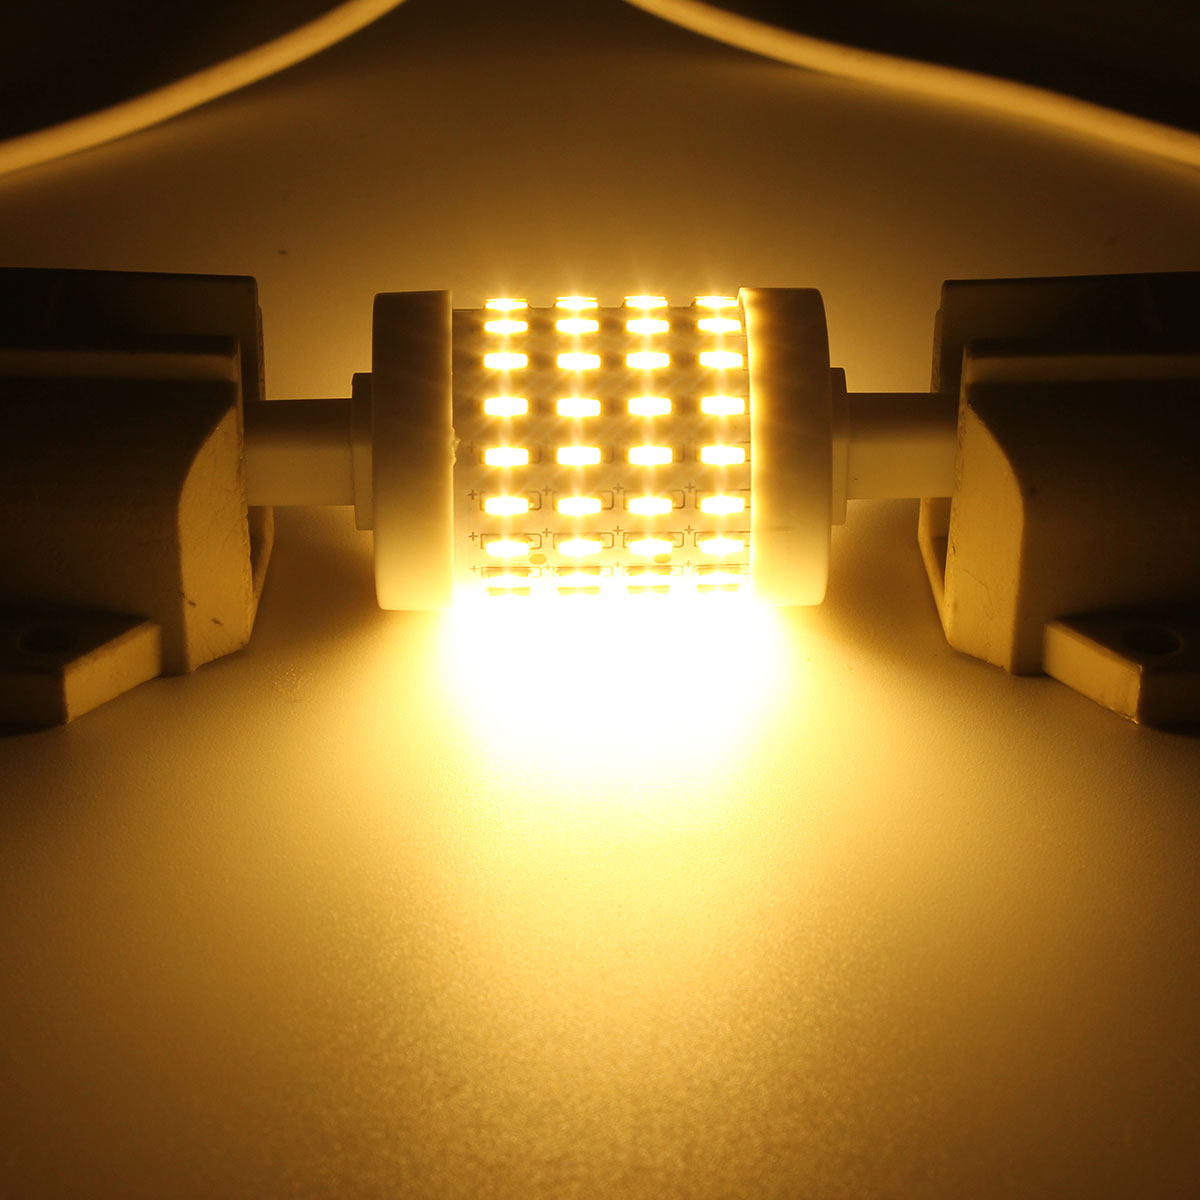 Dimmable R7S 78mm 5W 72 SMD 4014 350Lm Pure White Warm White LED Corn Light Bulb AC85-265V